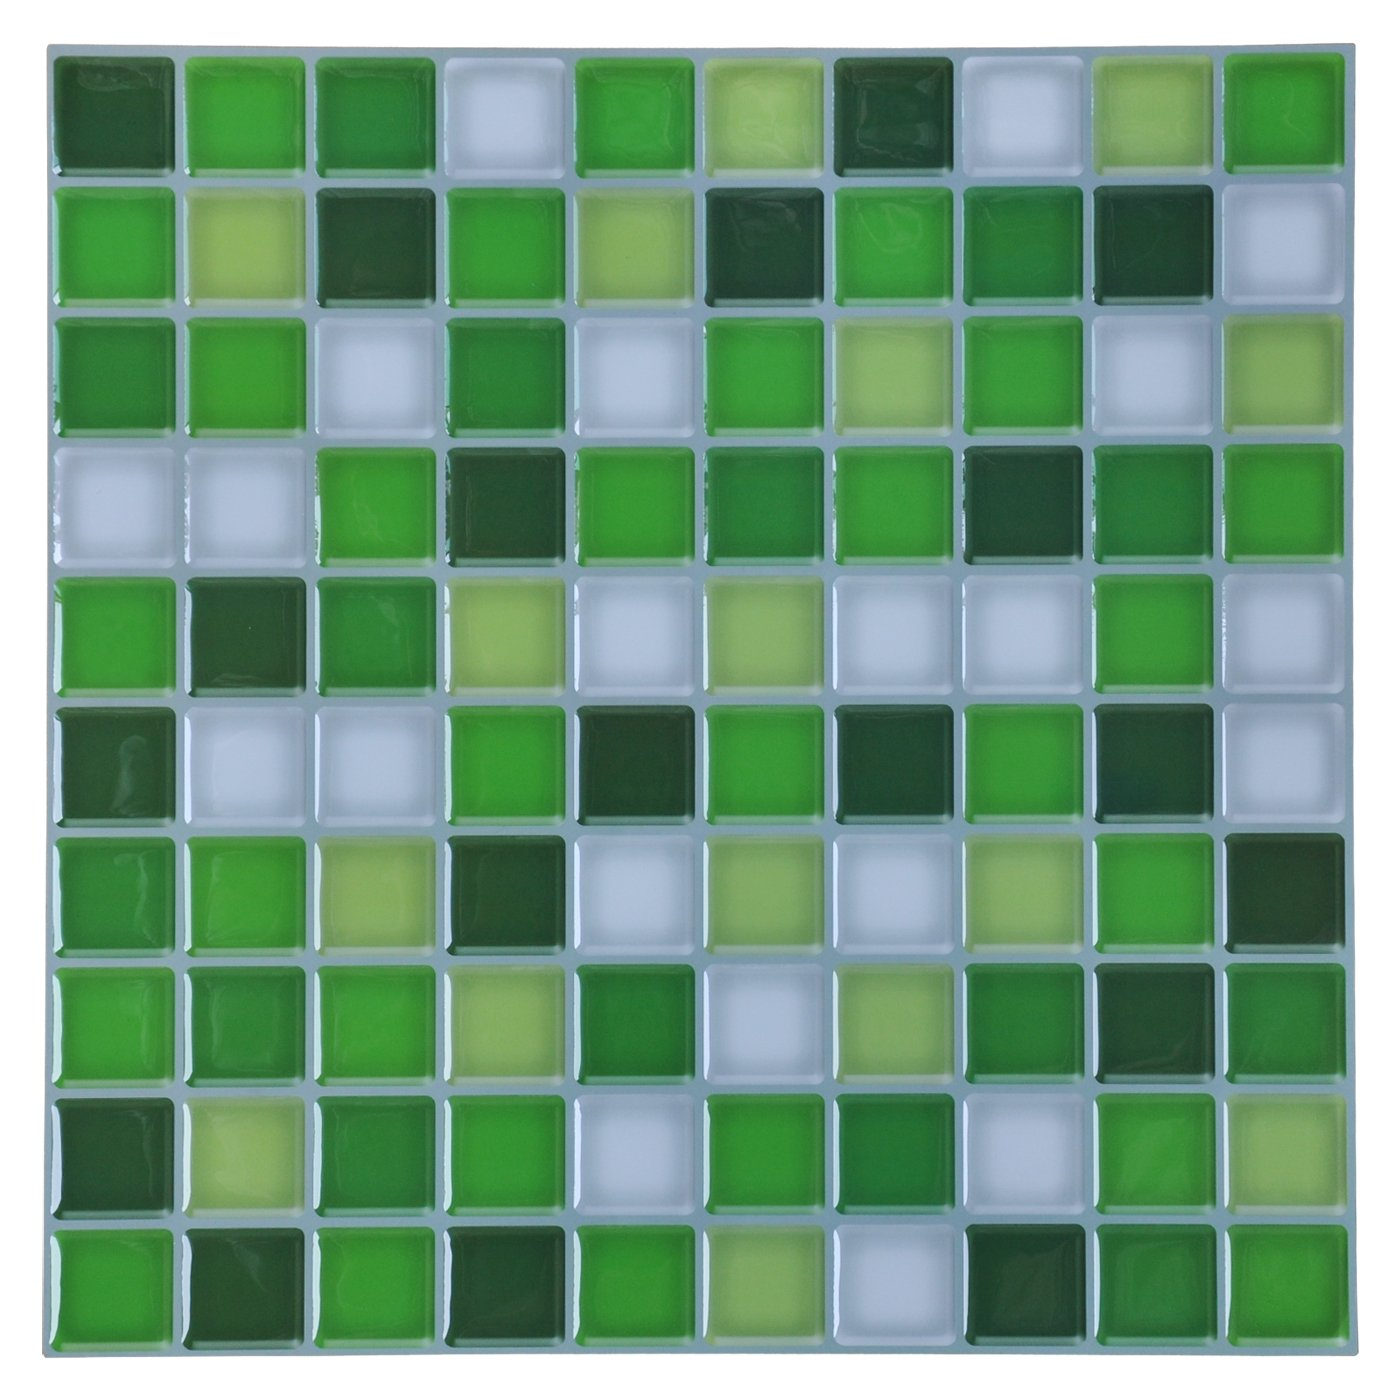 Cheap epoxy tile adhesive find epoxy tile adhesive deals on line at get quotations hentl peel and stick tile 12 x 12 peel and stick kitchen backsplash green ppazfo